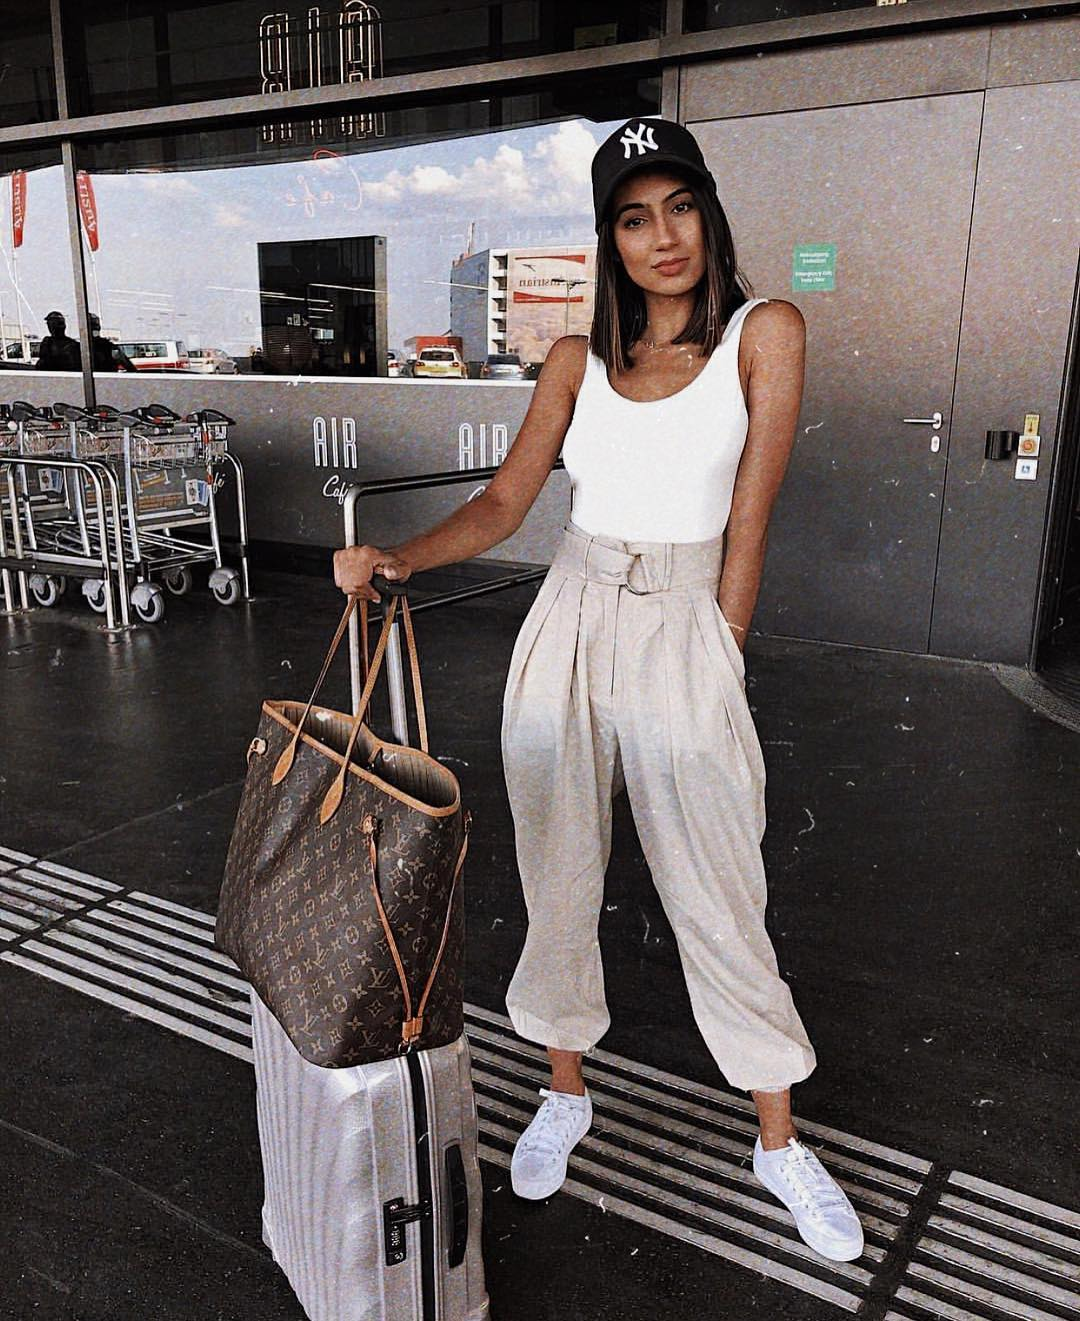 Airport Outfit Idea: White Tank Top And Tailored Joggers In Light Grey With White Sneakers 2019